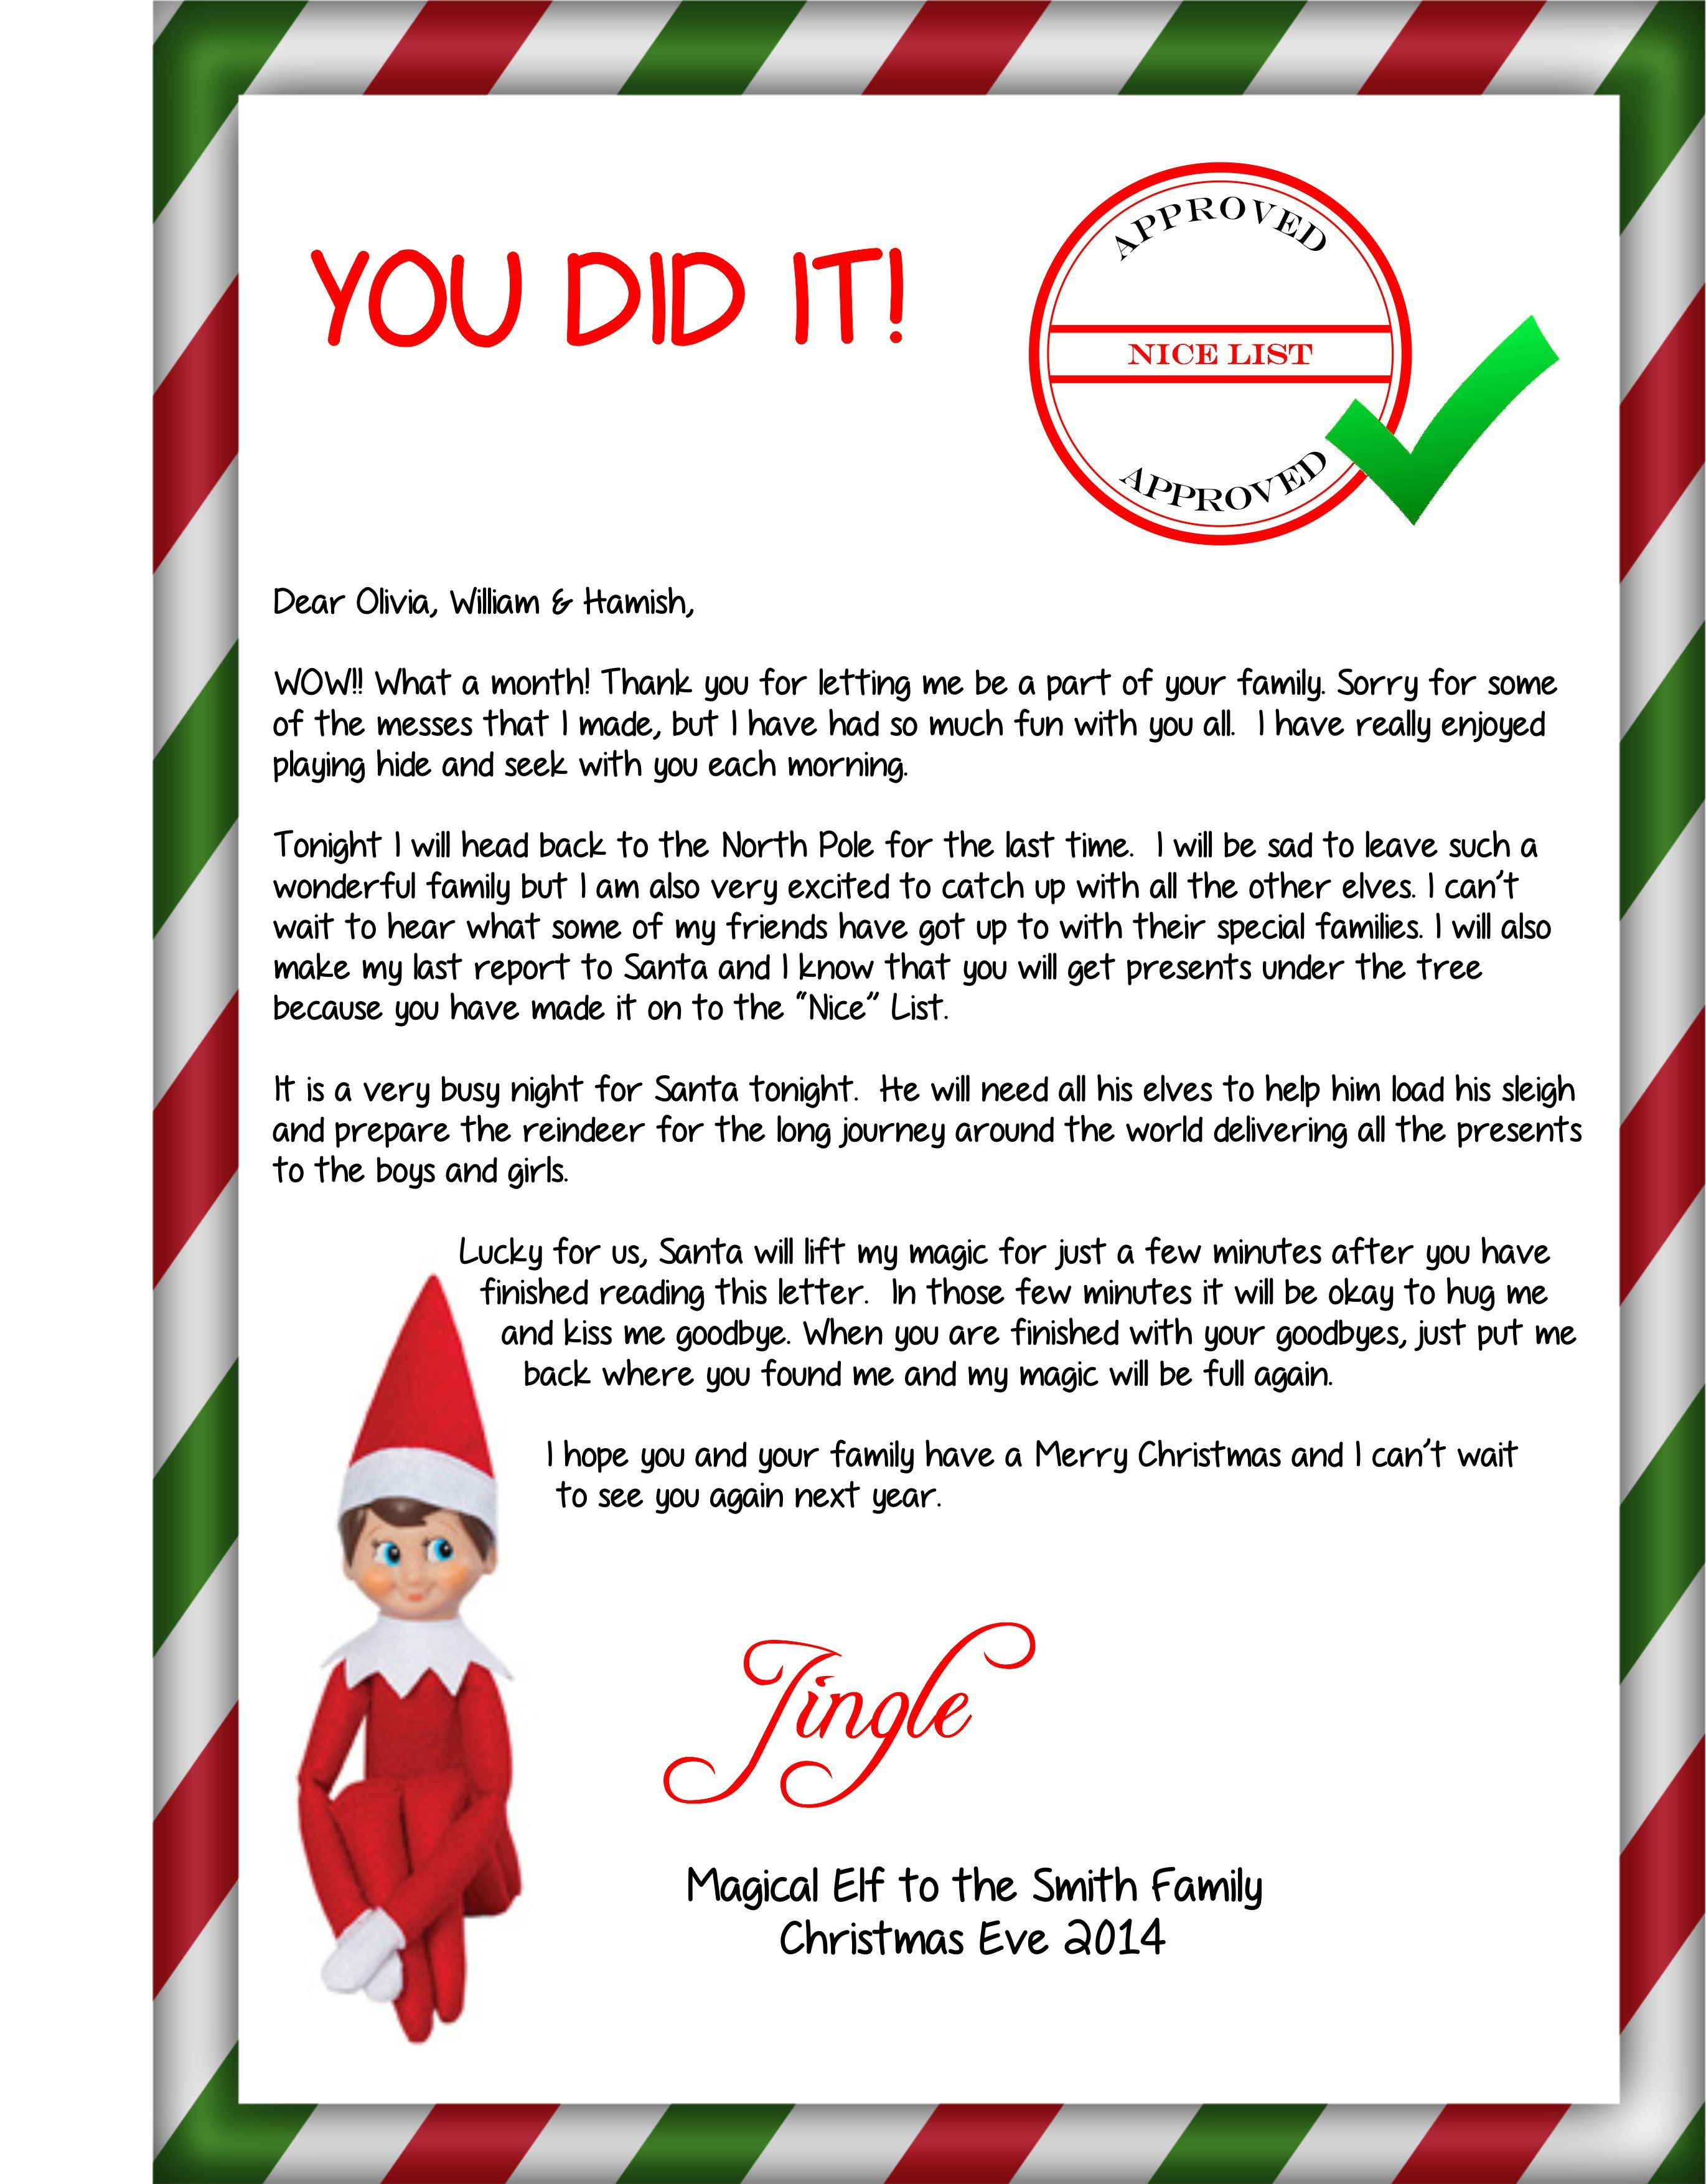 This Is The Goodbye Letter From The Elf When He Is Heading